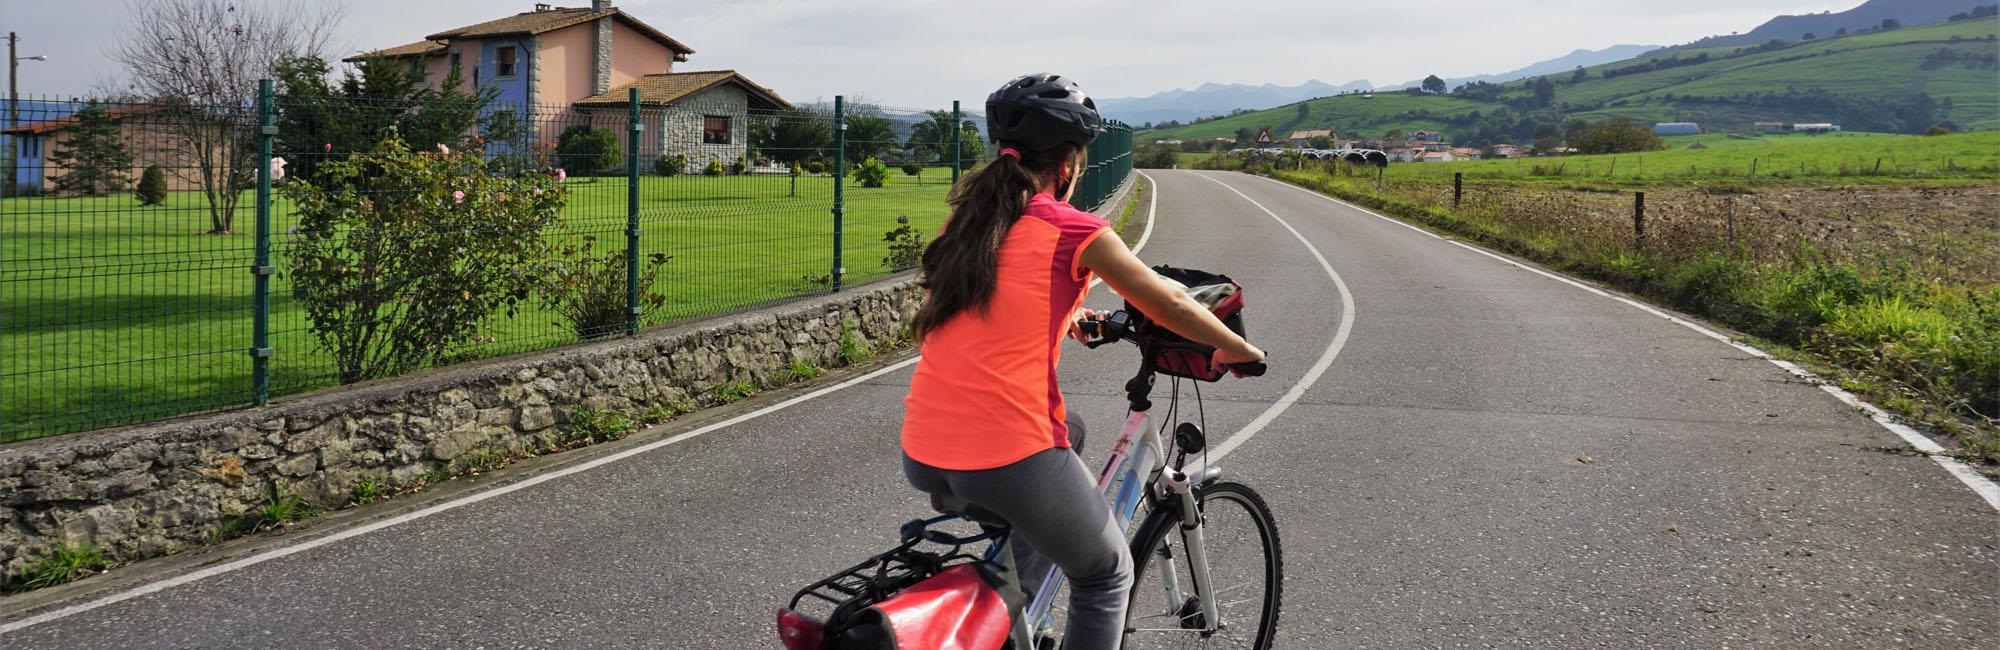 Cyclist biking in an Asturian road